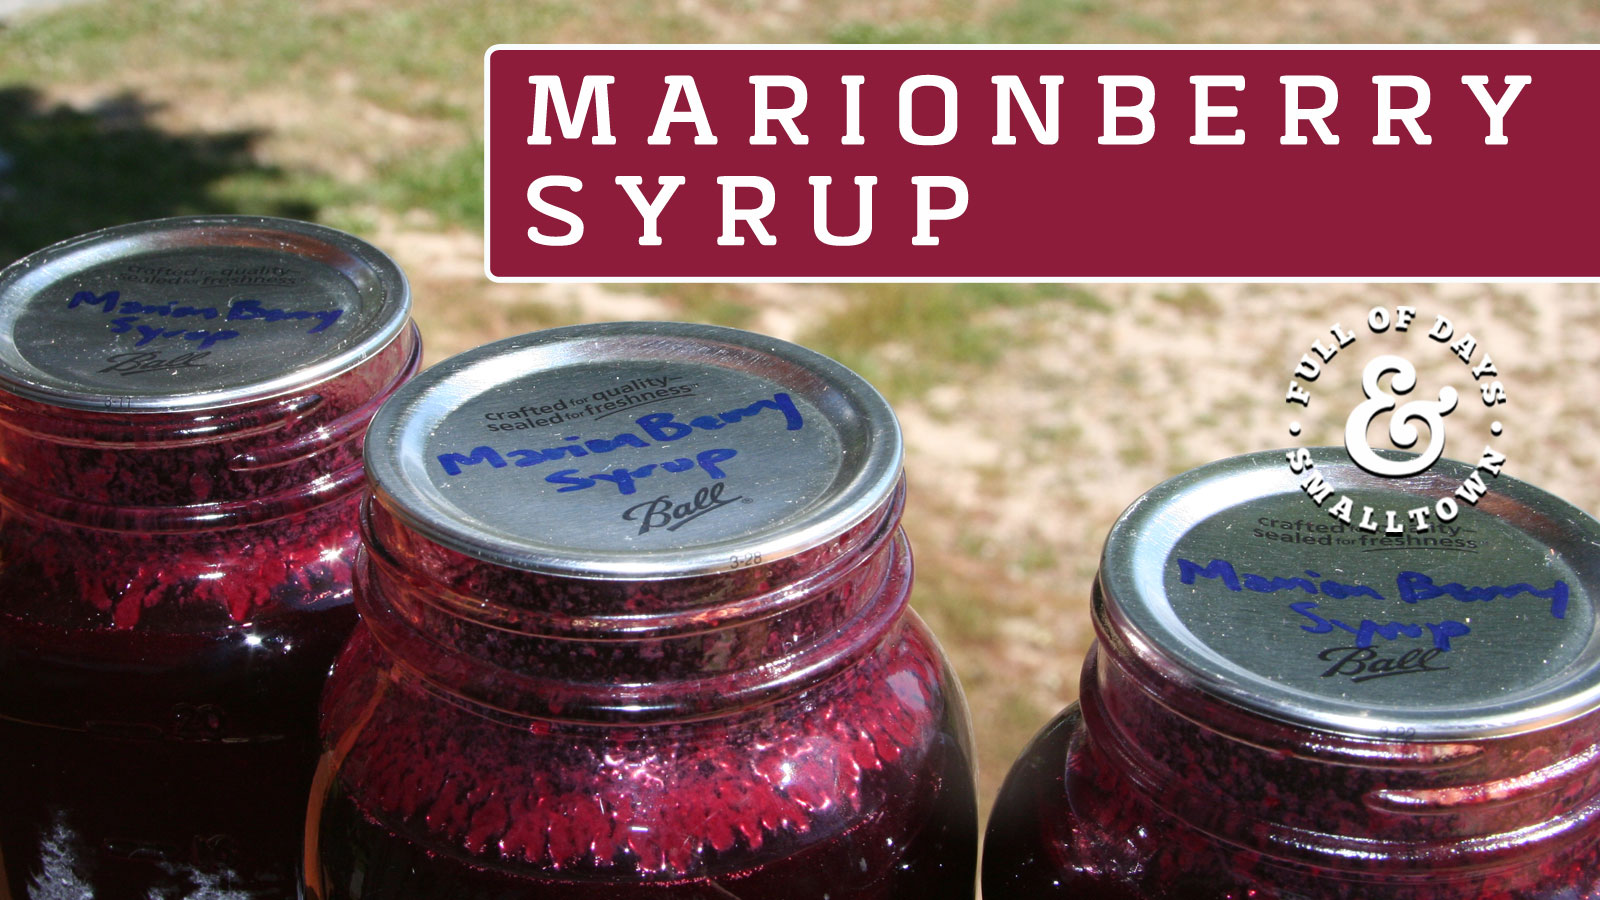 Marionberry-Syrup_Full-of-Days_1600-x-900